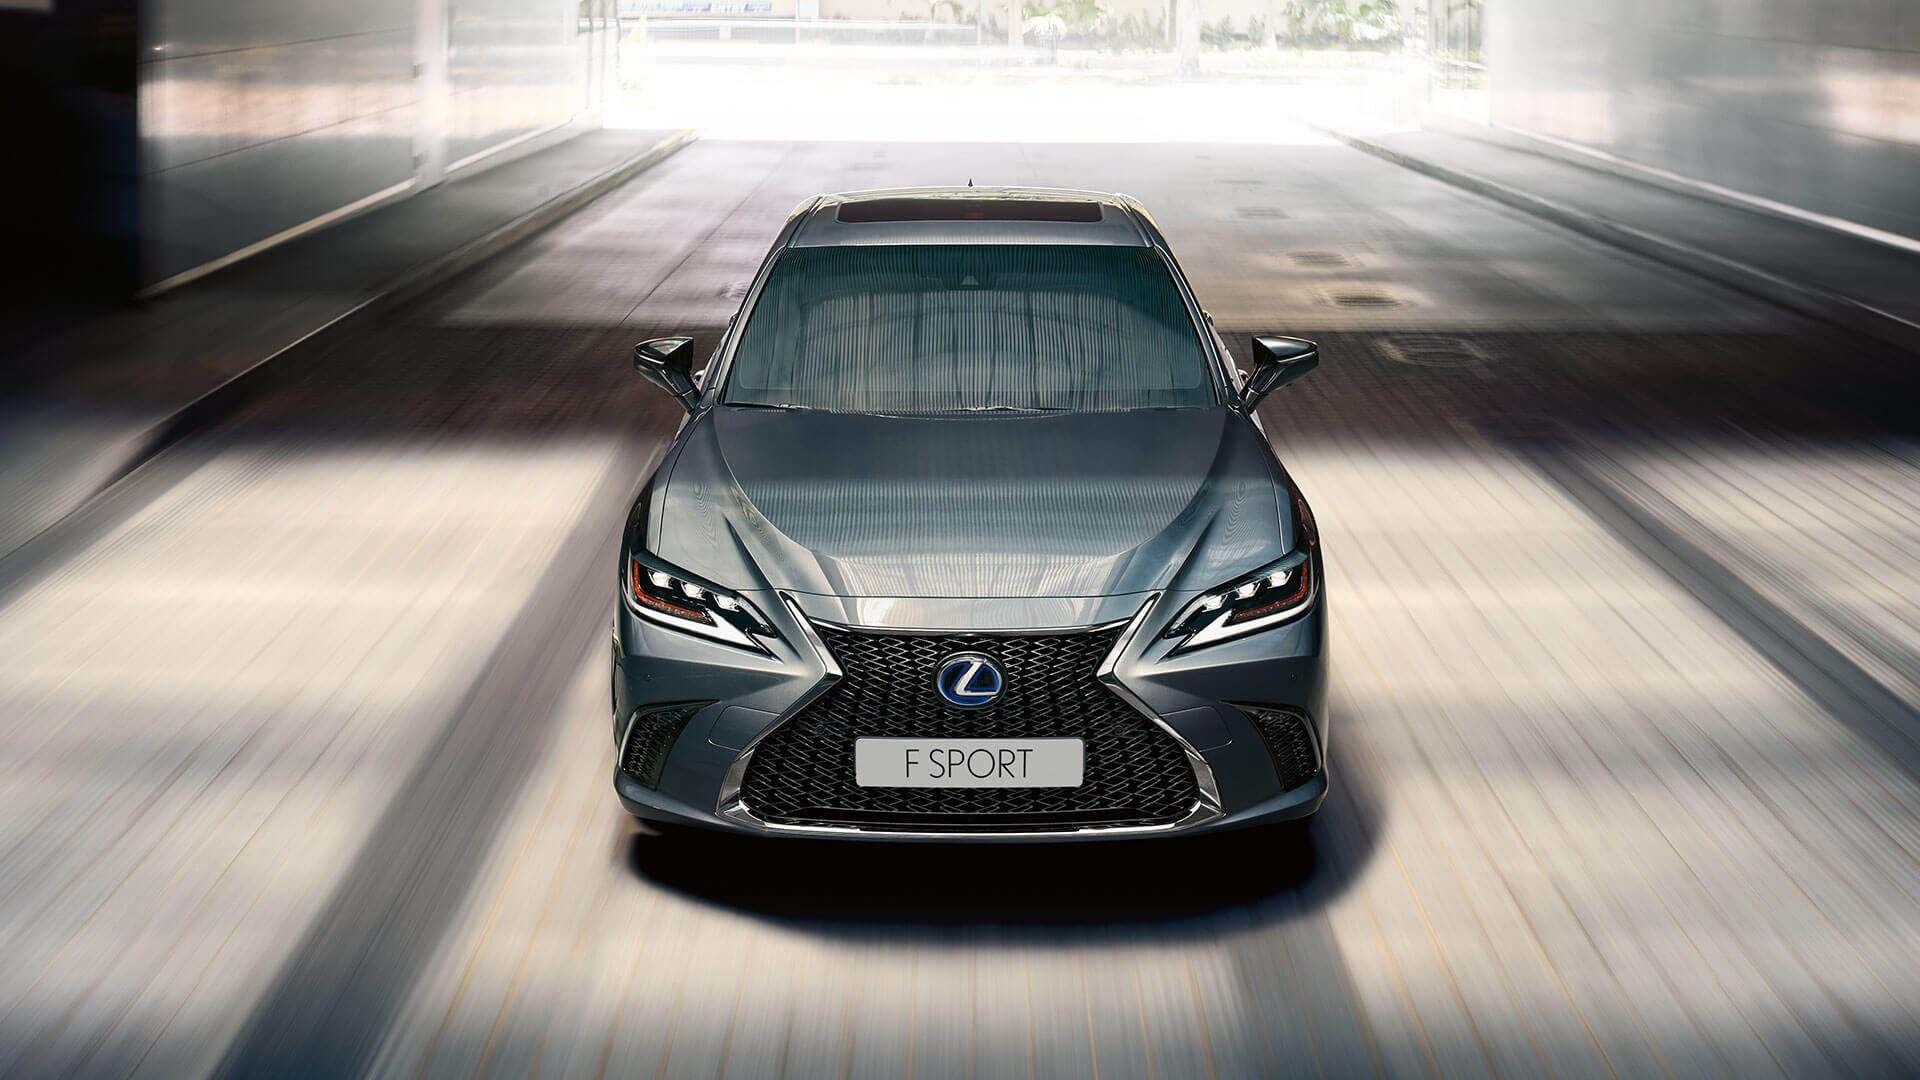 2019 lexus es hybrid experience feature 4th generation hybrid drive